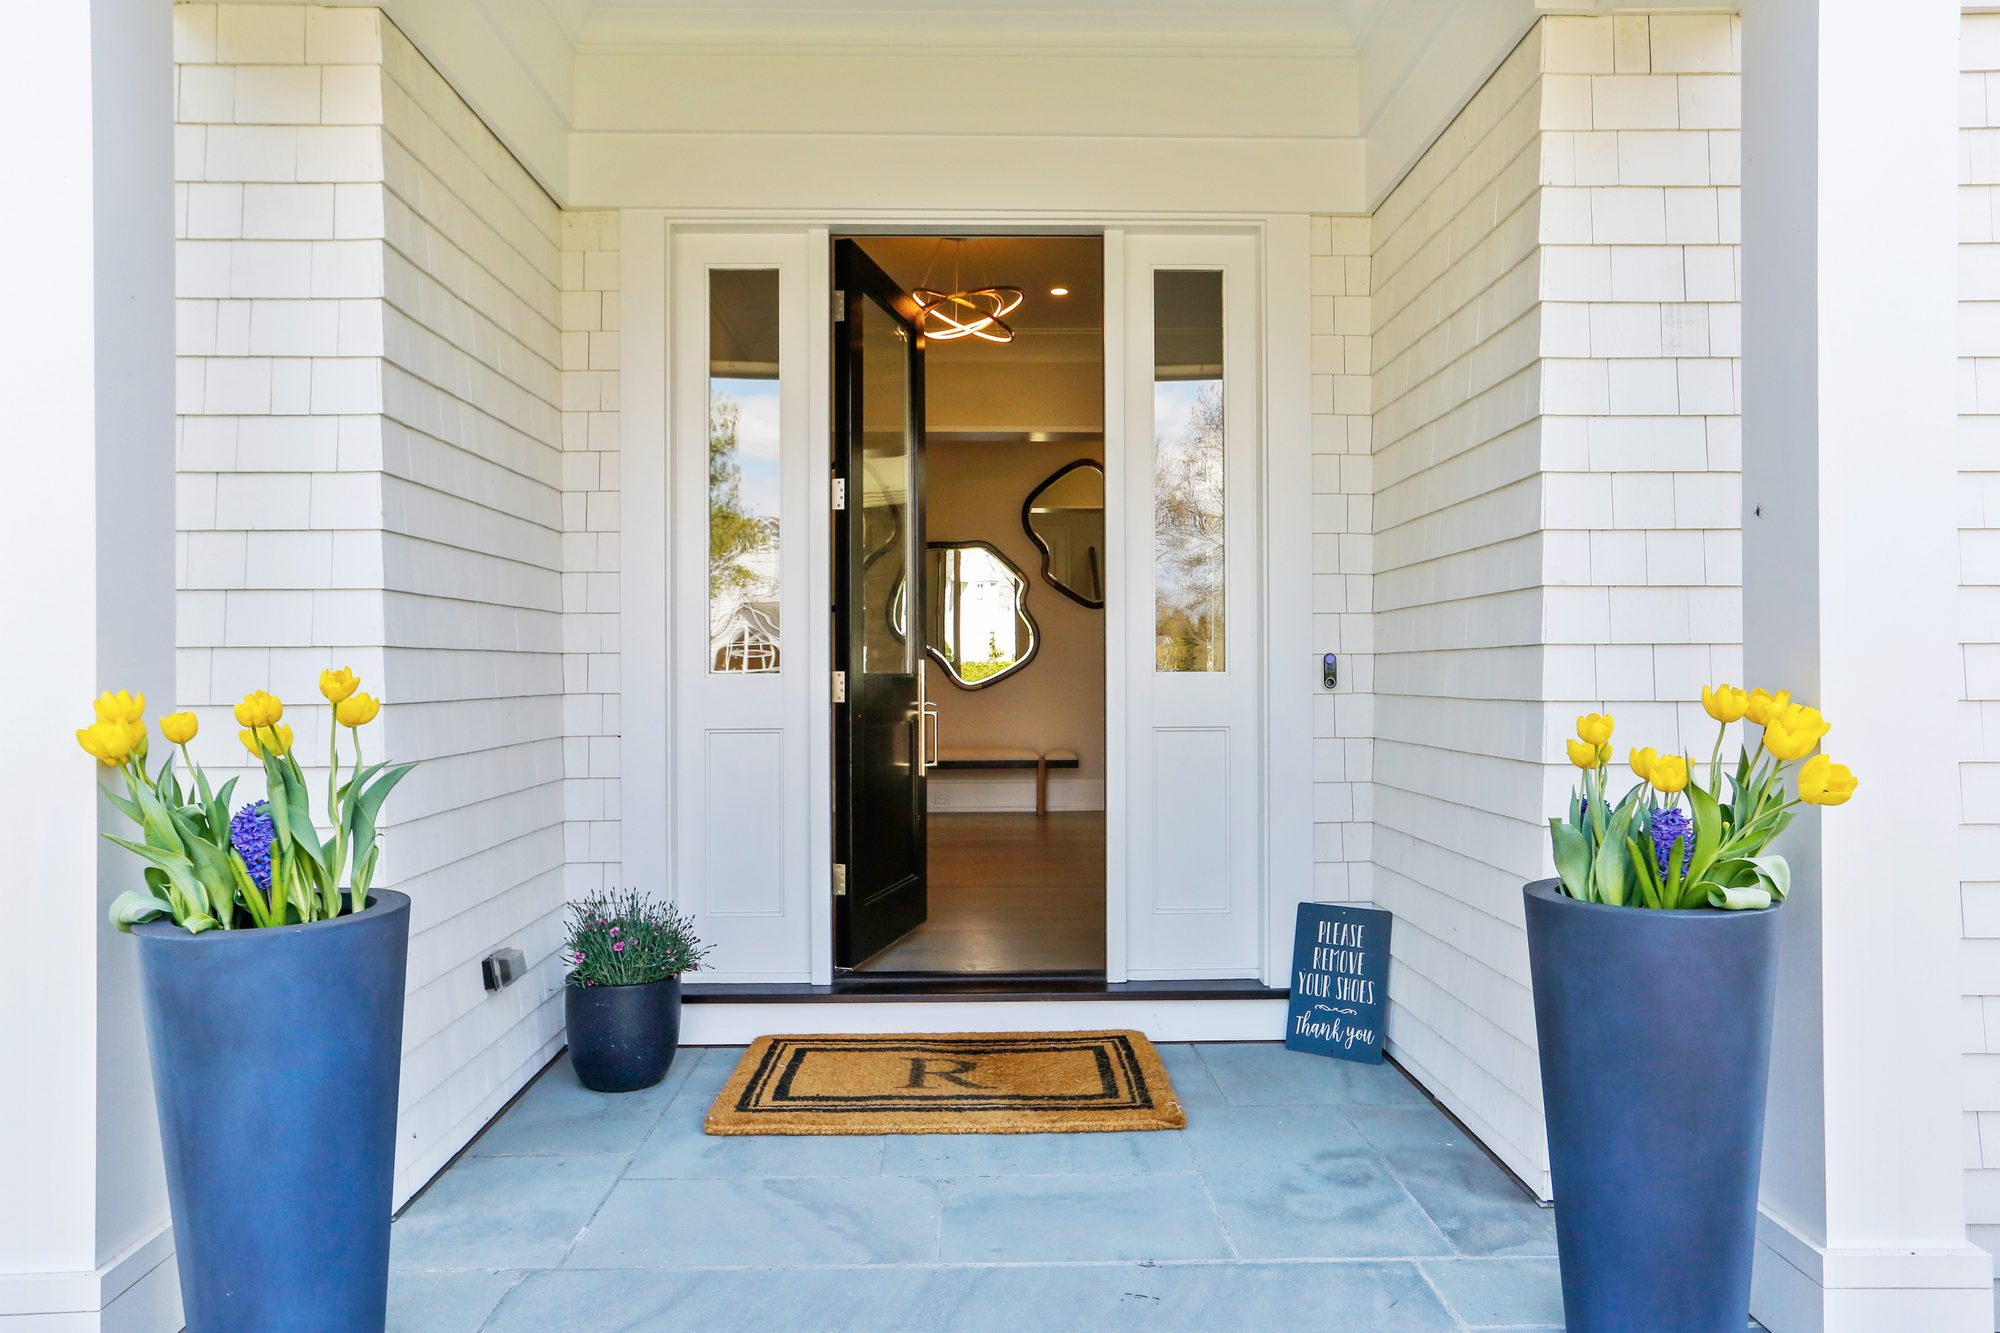 Blue stone front porch floor with white siding and a black front door.